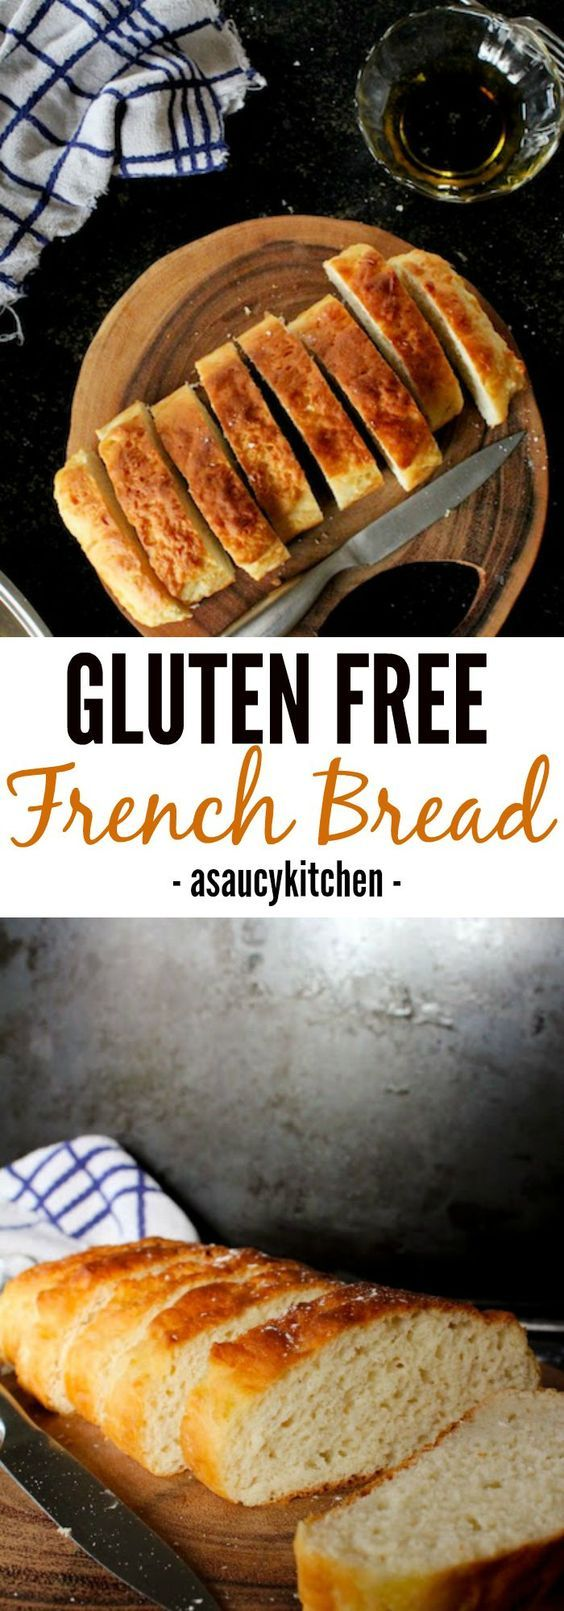 Easy Gluten Free French Bread | asaucykitchen.com